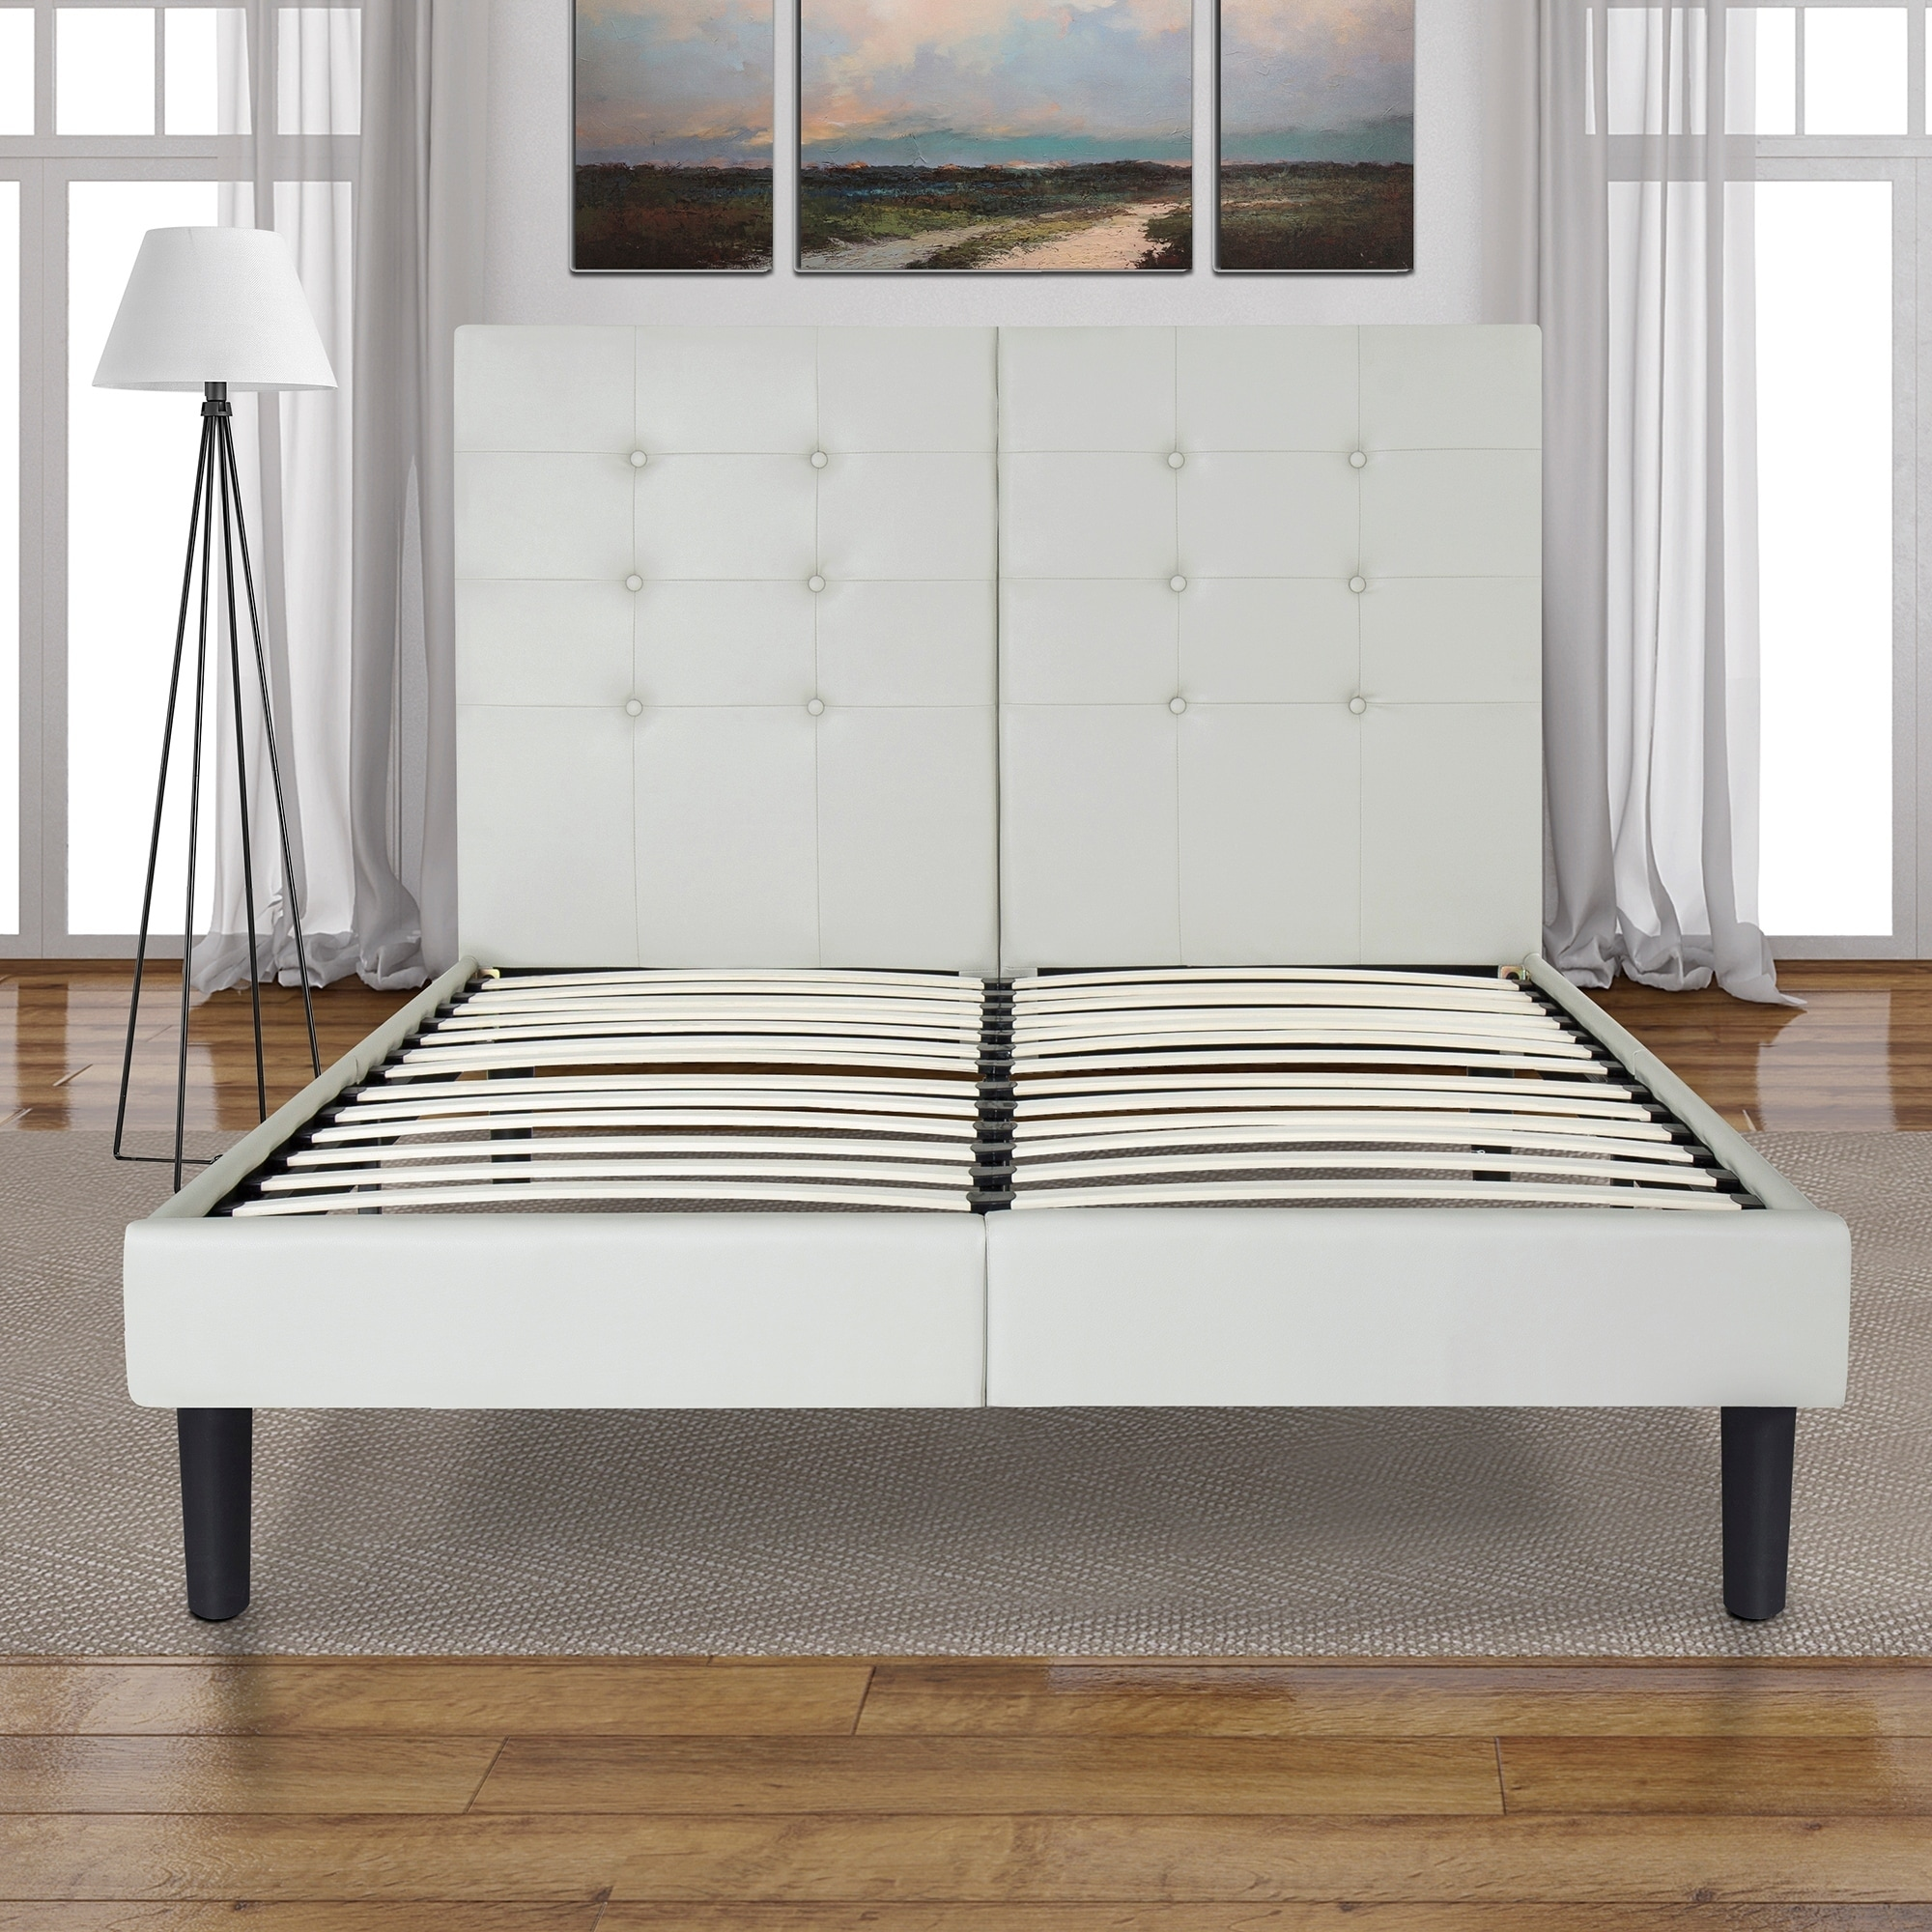 online retailer 36163 a5f66 Sleeplanner 14-inch Queen-Size Upholstered Bed Frame with Grey Button Faux  Leather Headboard